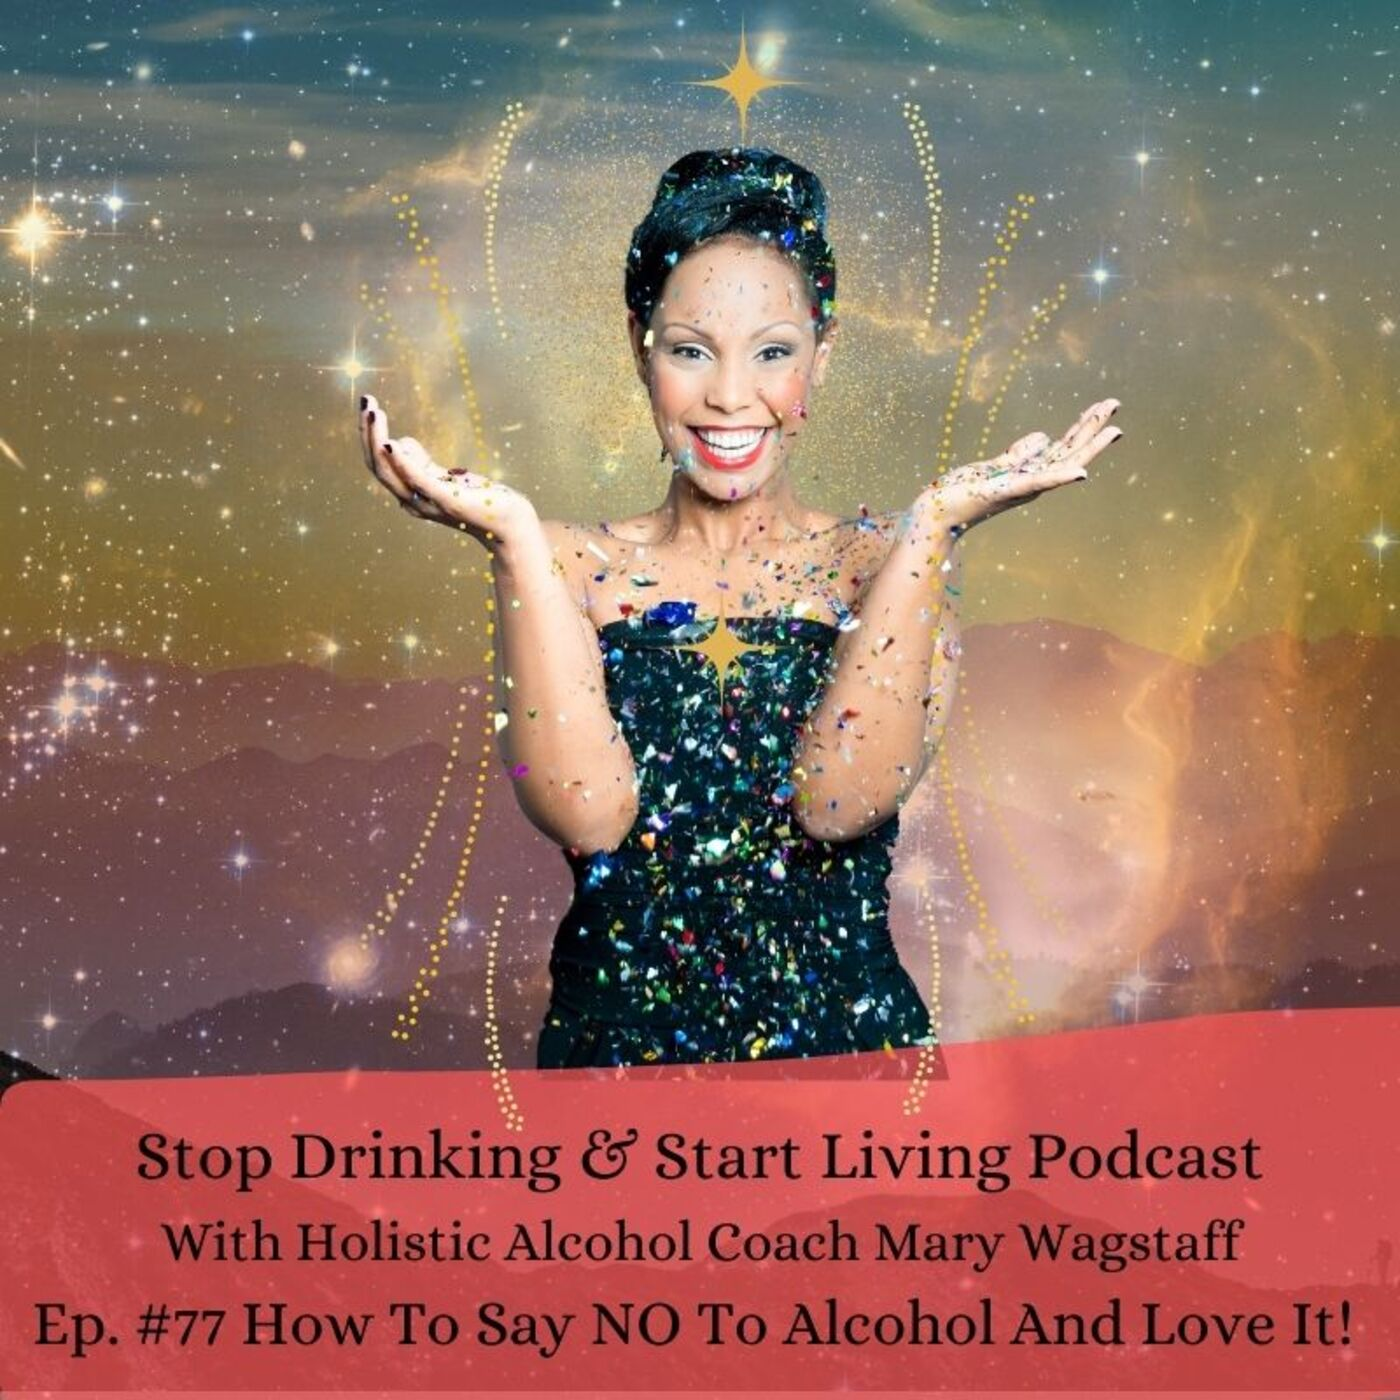 Ep. #77 How to Say NO To Alcohol, and LOVE it.